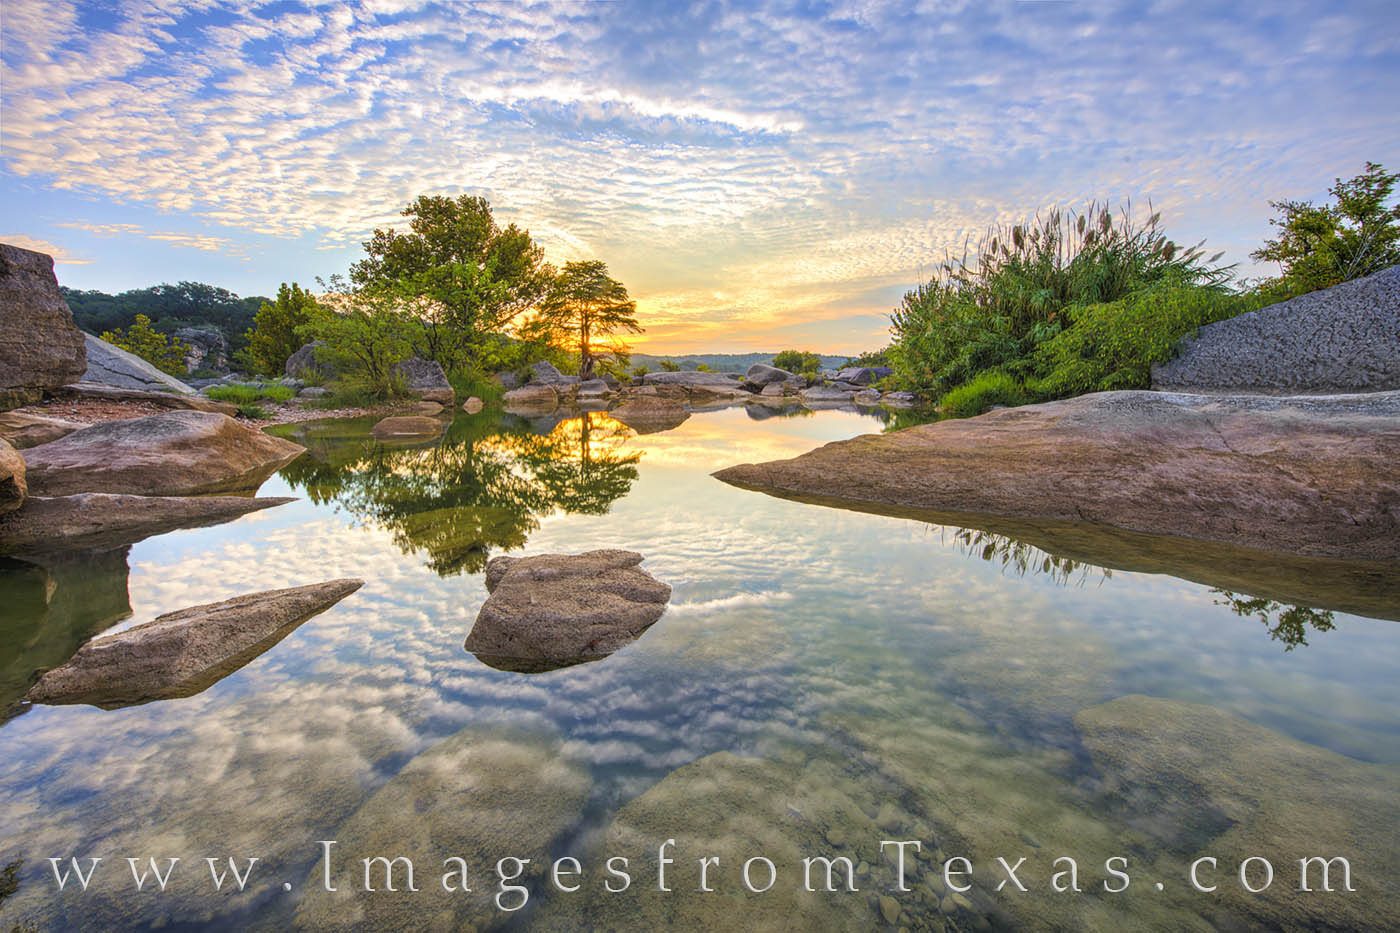 texas hill country, pedernales river, hill country, sunrise, pedernales, texas sunrise, september, october, autumn, fall, photo